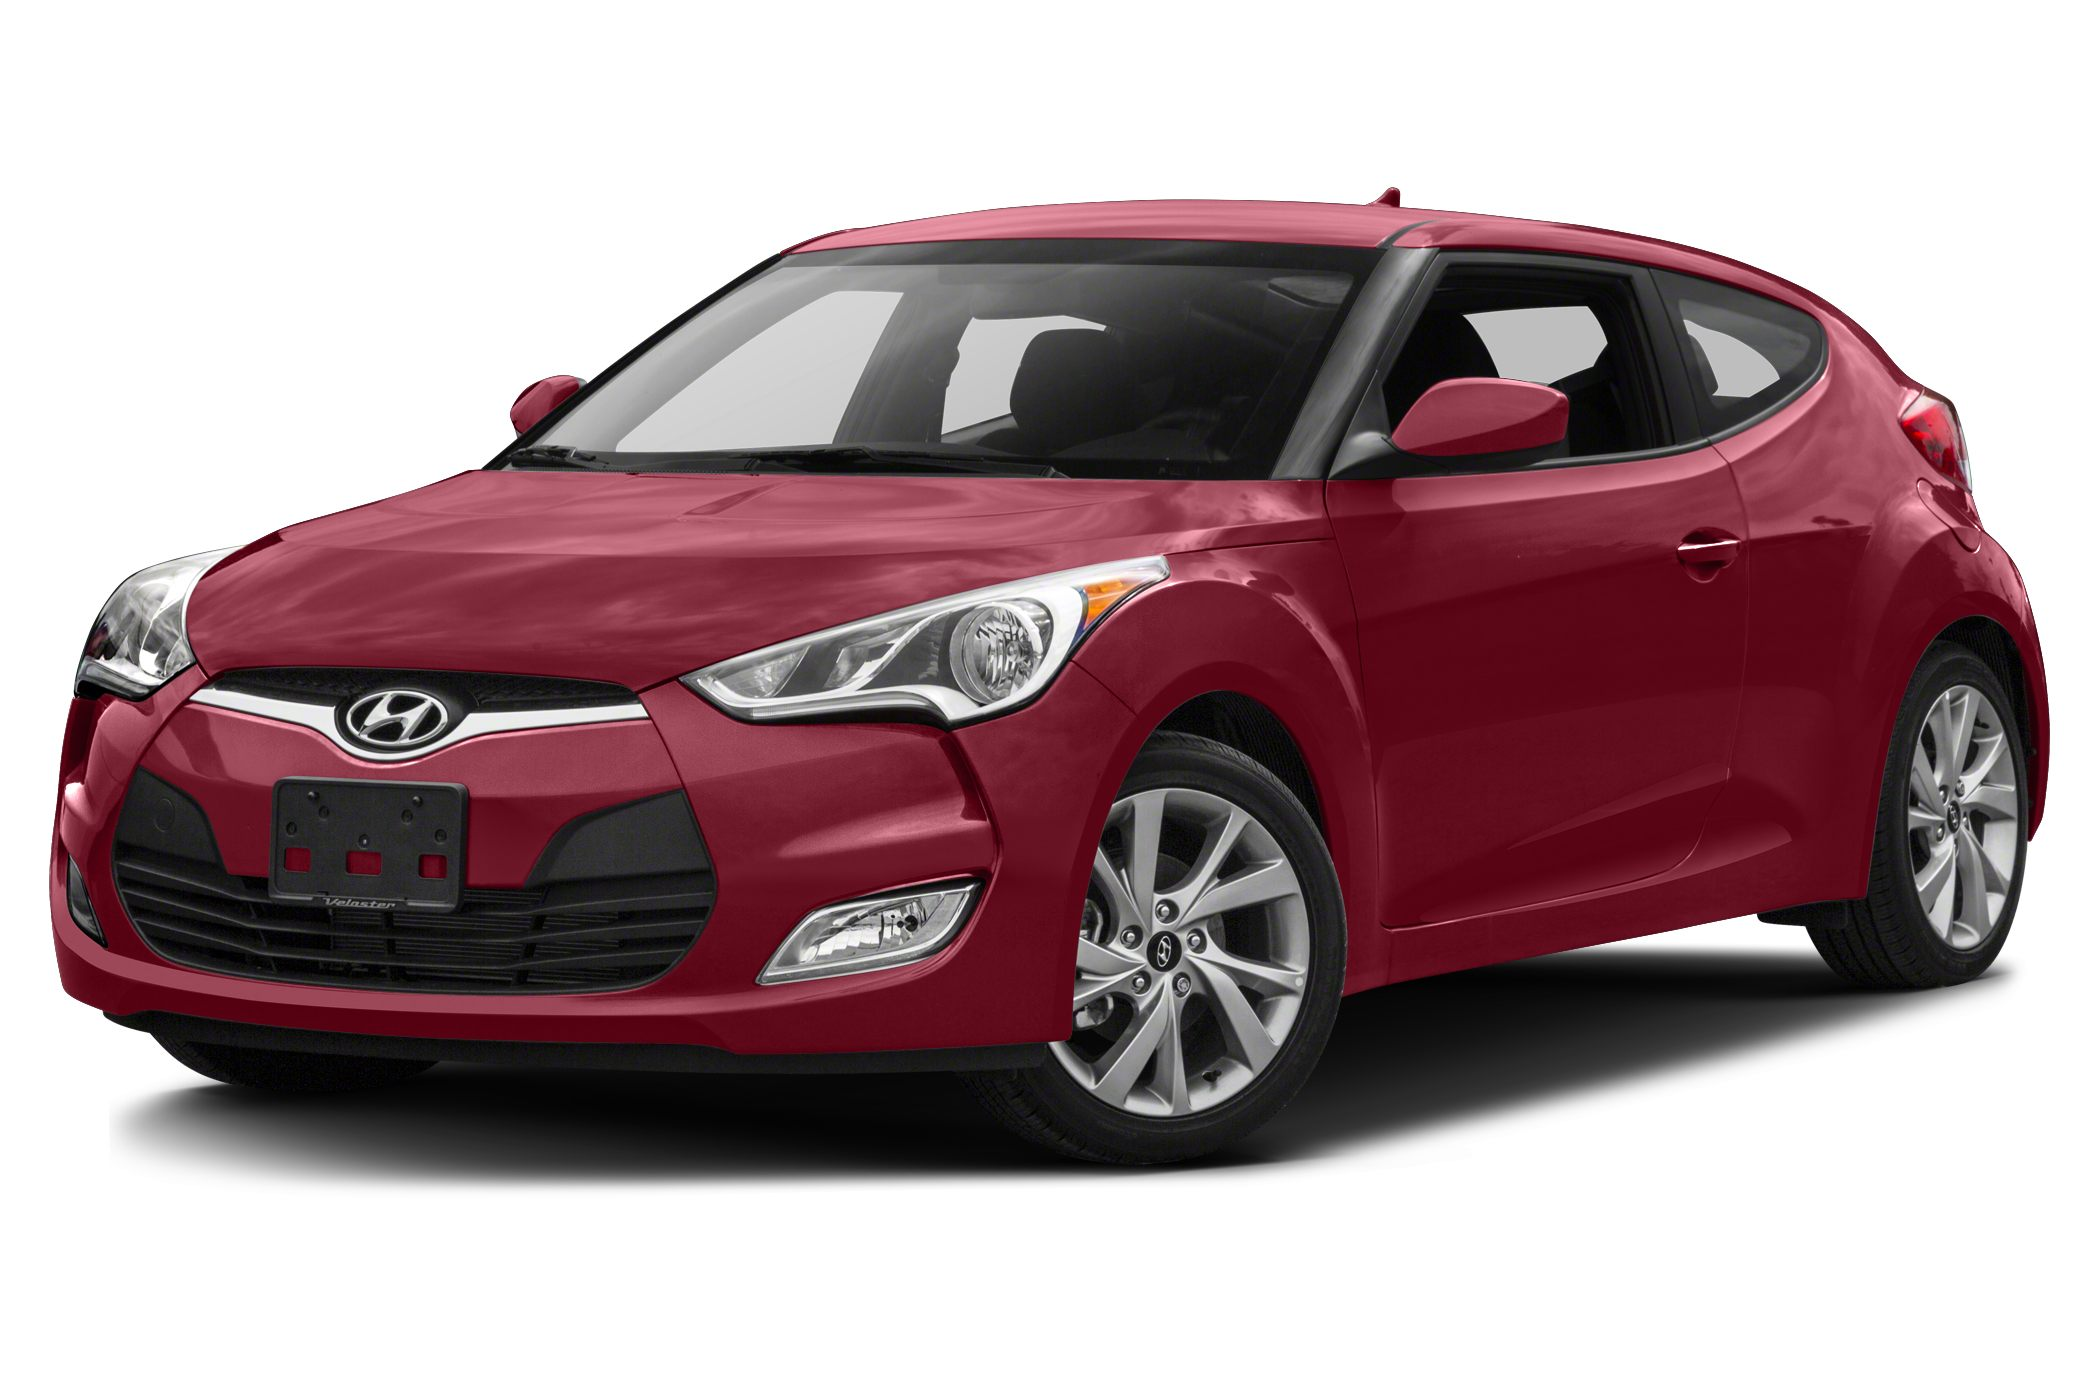 Hyundai Canada Incentives for the new 2017 Hyundai Veloster Coupe and Veloster Turbo in Milton, Toronto, and the GTA